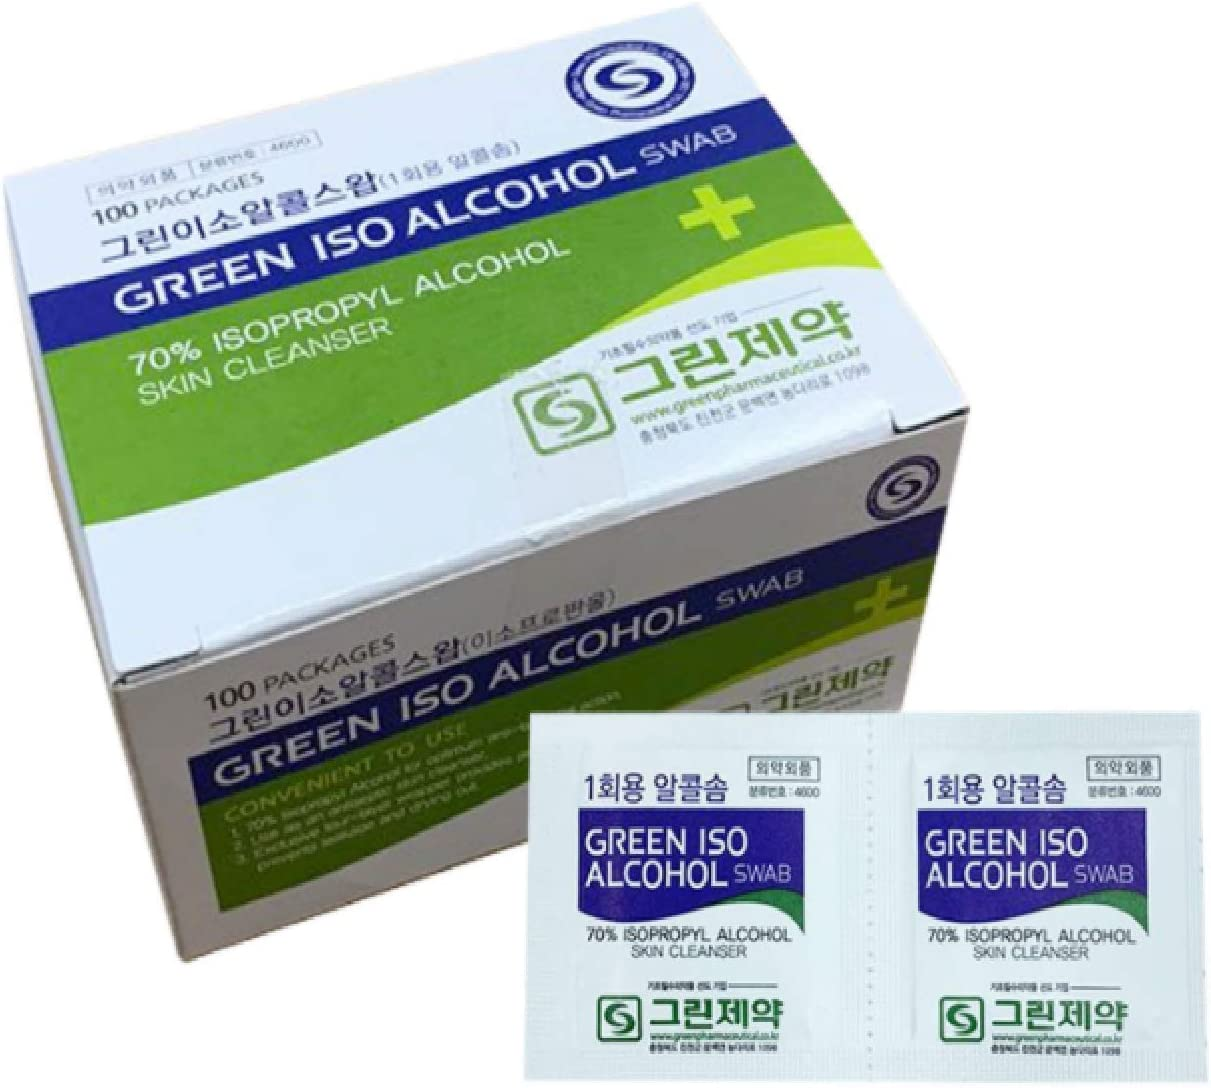 Made in Korea Green Iso 5pack 100PCS Cotton 500pcs SEAL limited Purchase product Swab